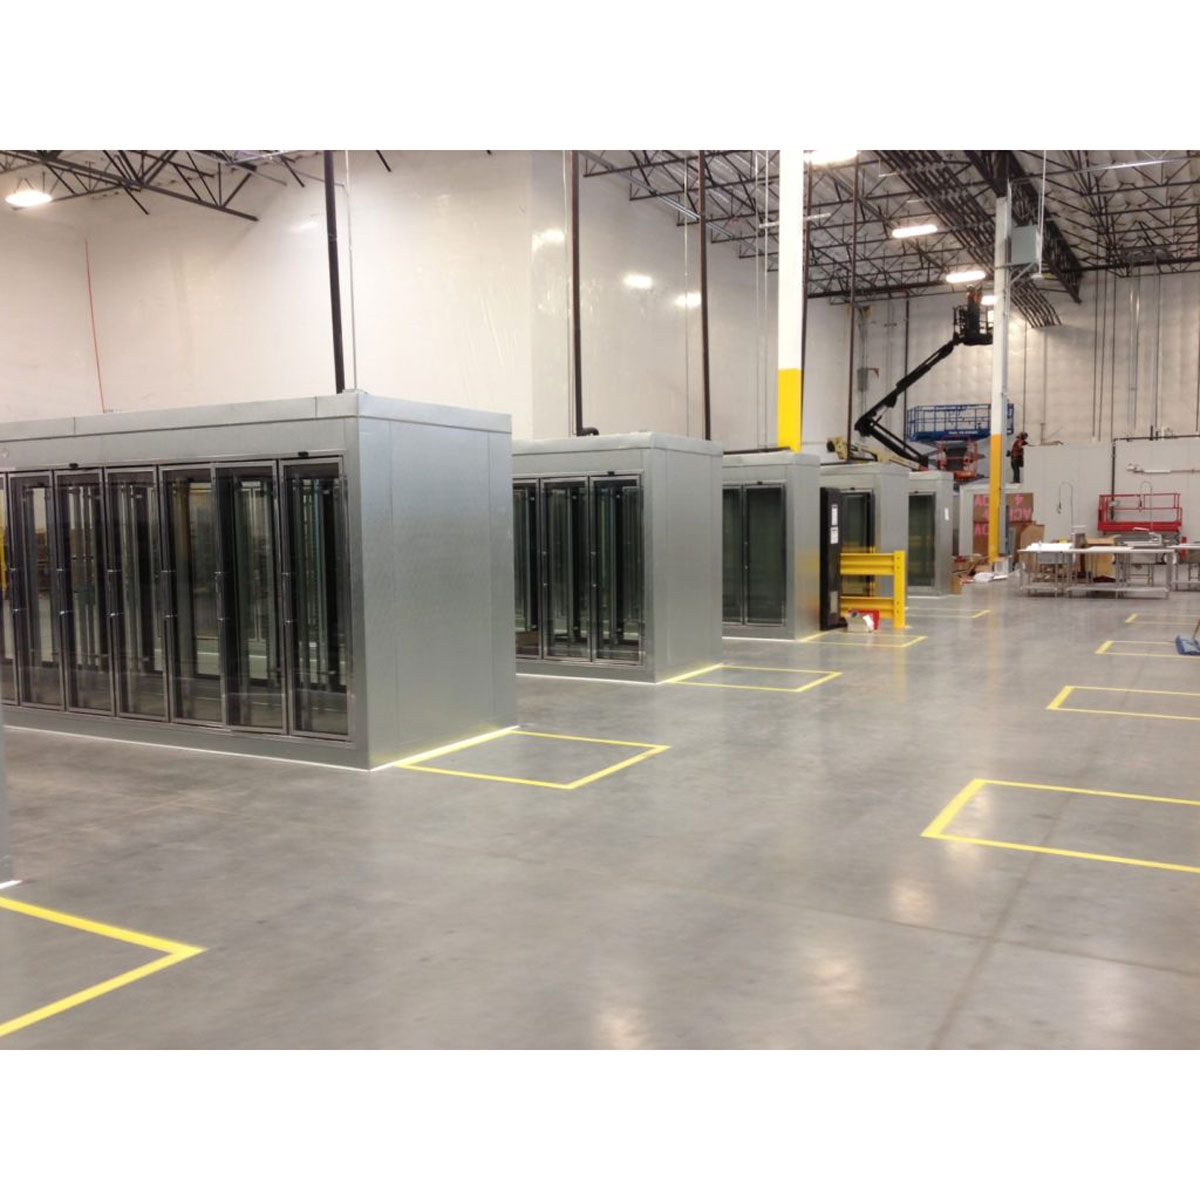 Amazon Fresh Glass Display Doors Commercial Cooling Par Engineering Inc. City of Industry